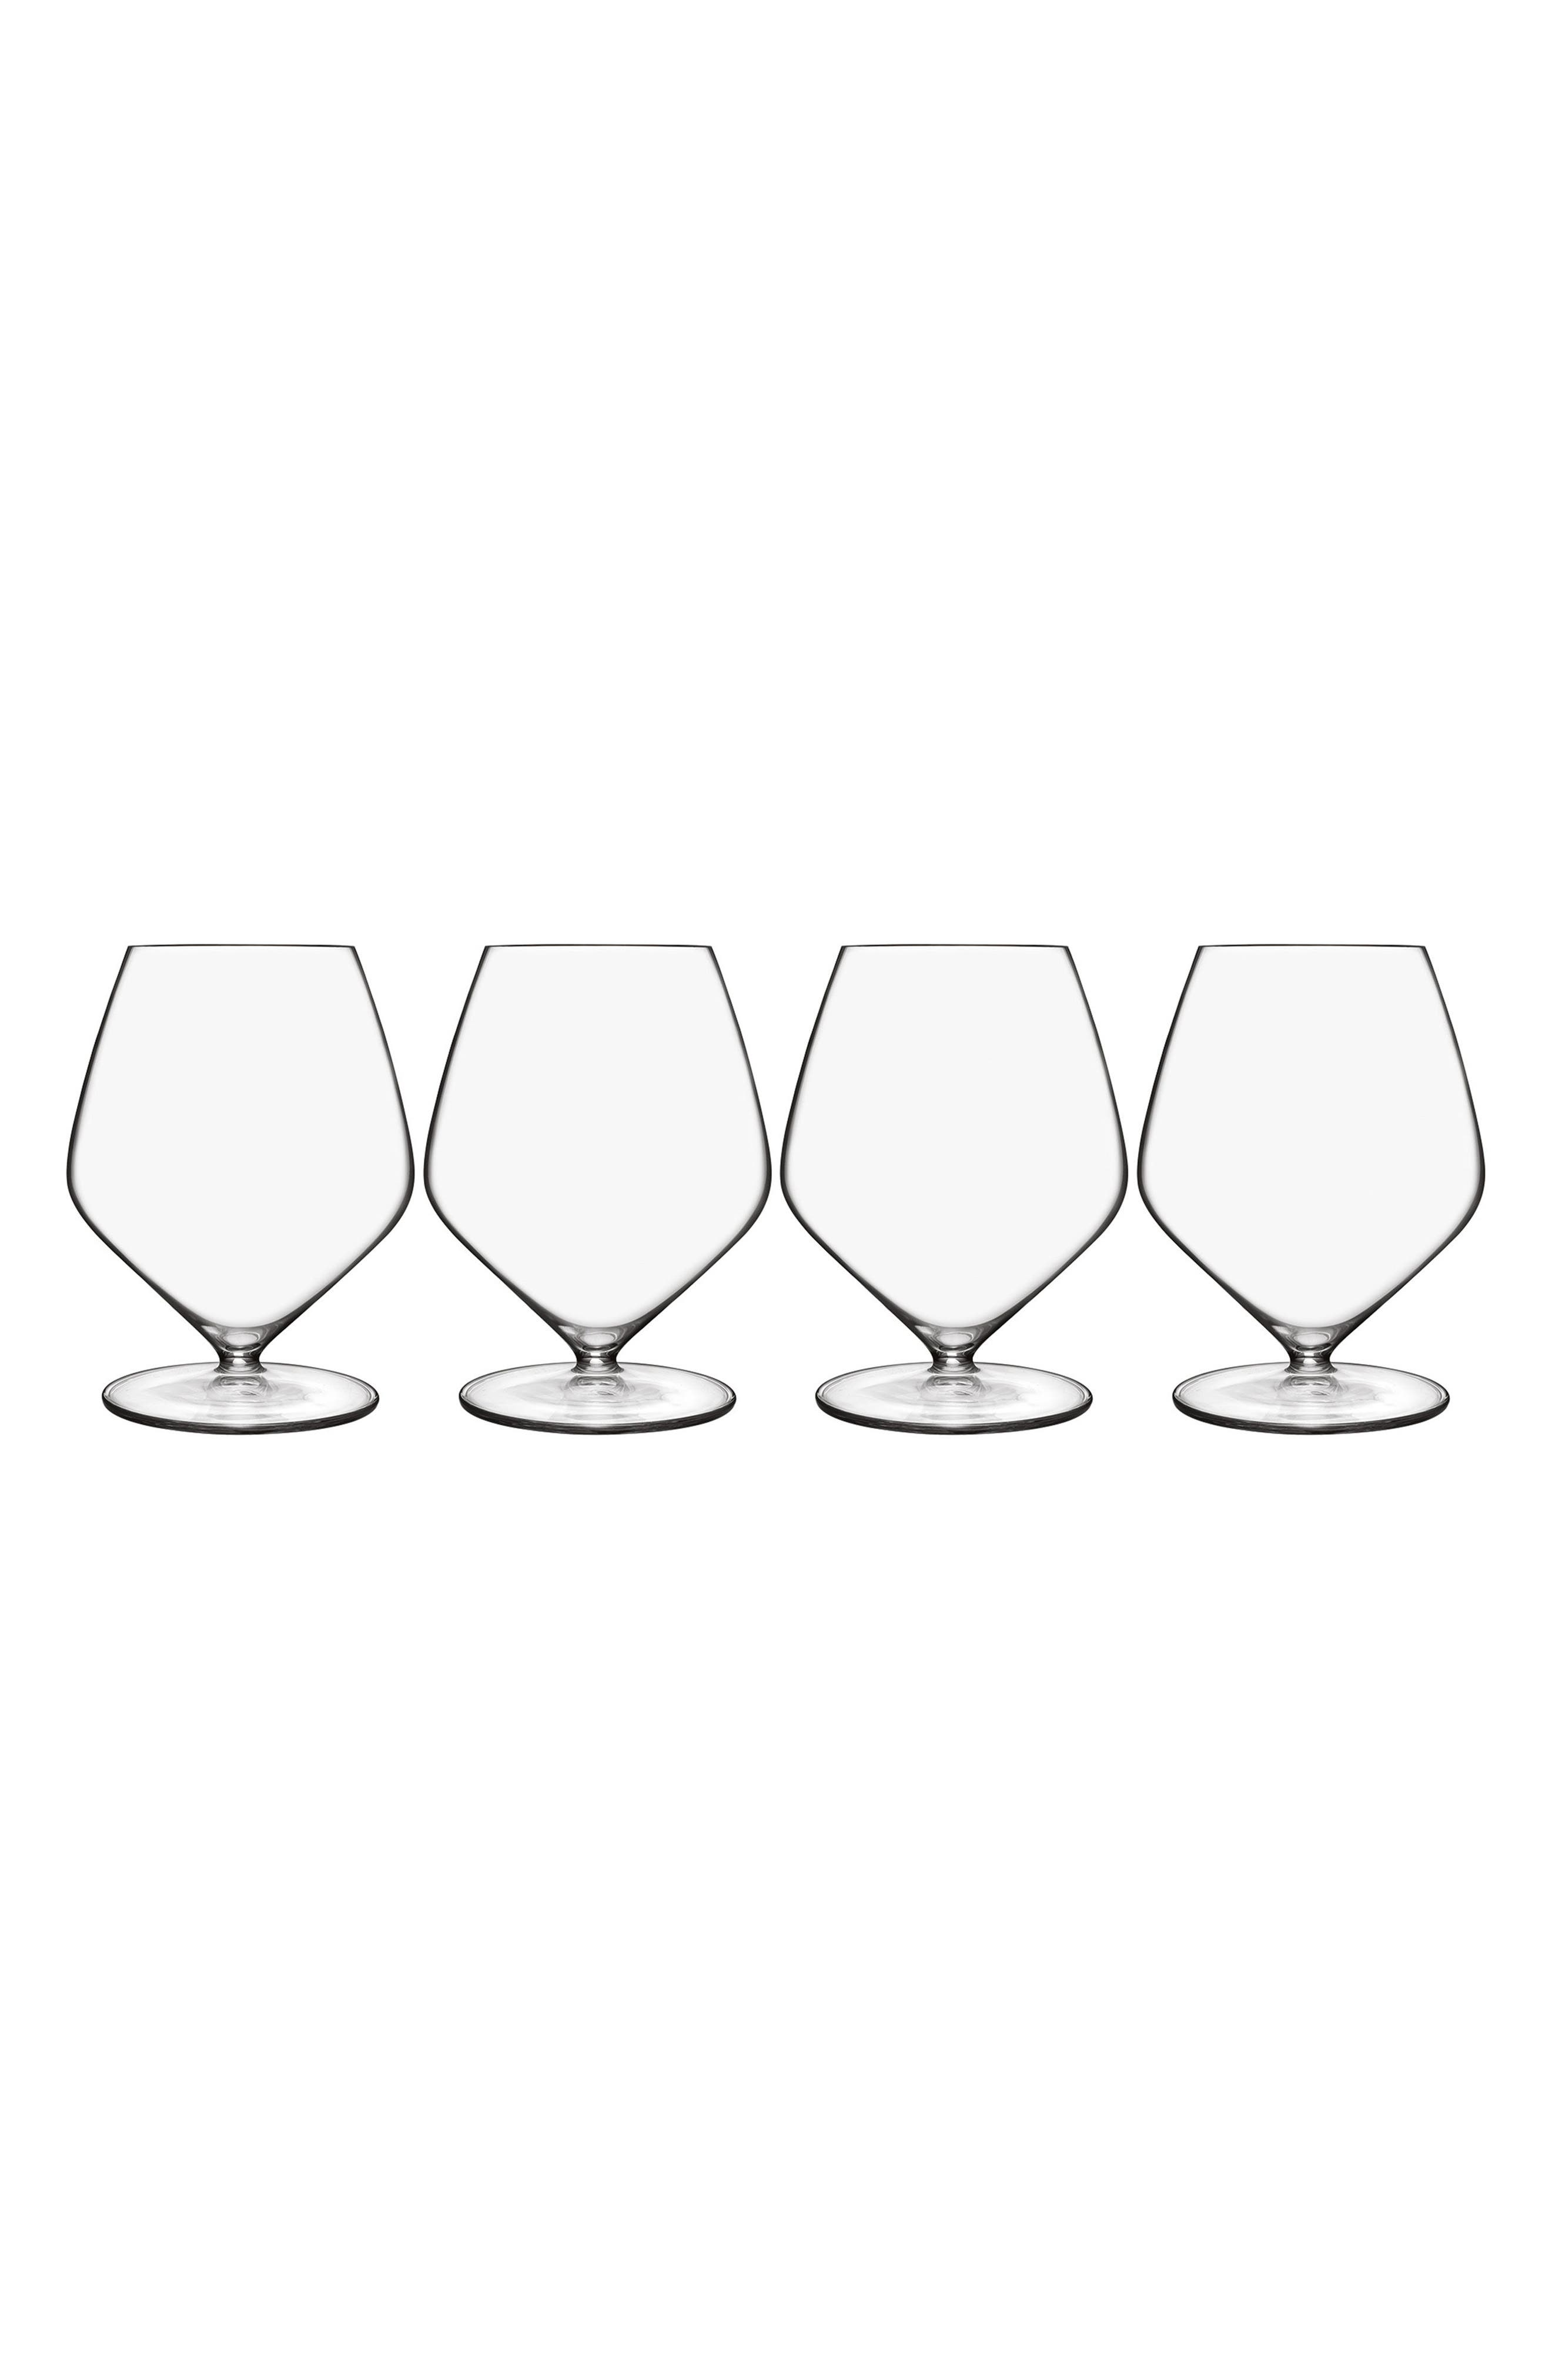 T-Glass Set of 4 Pinot Noir Glasses,                         Main,                         color, CLEAR